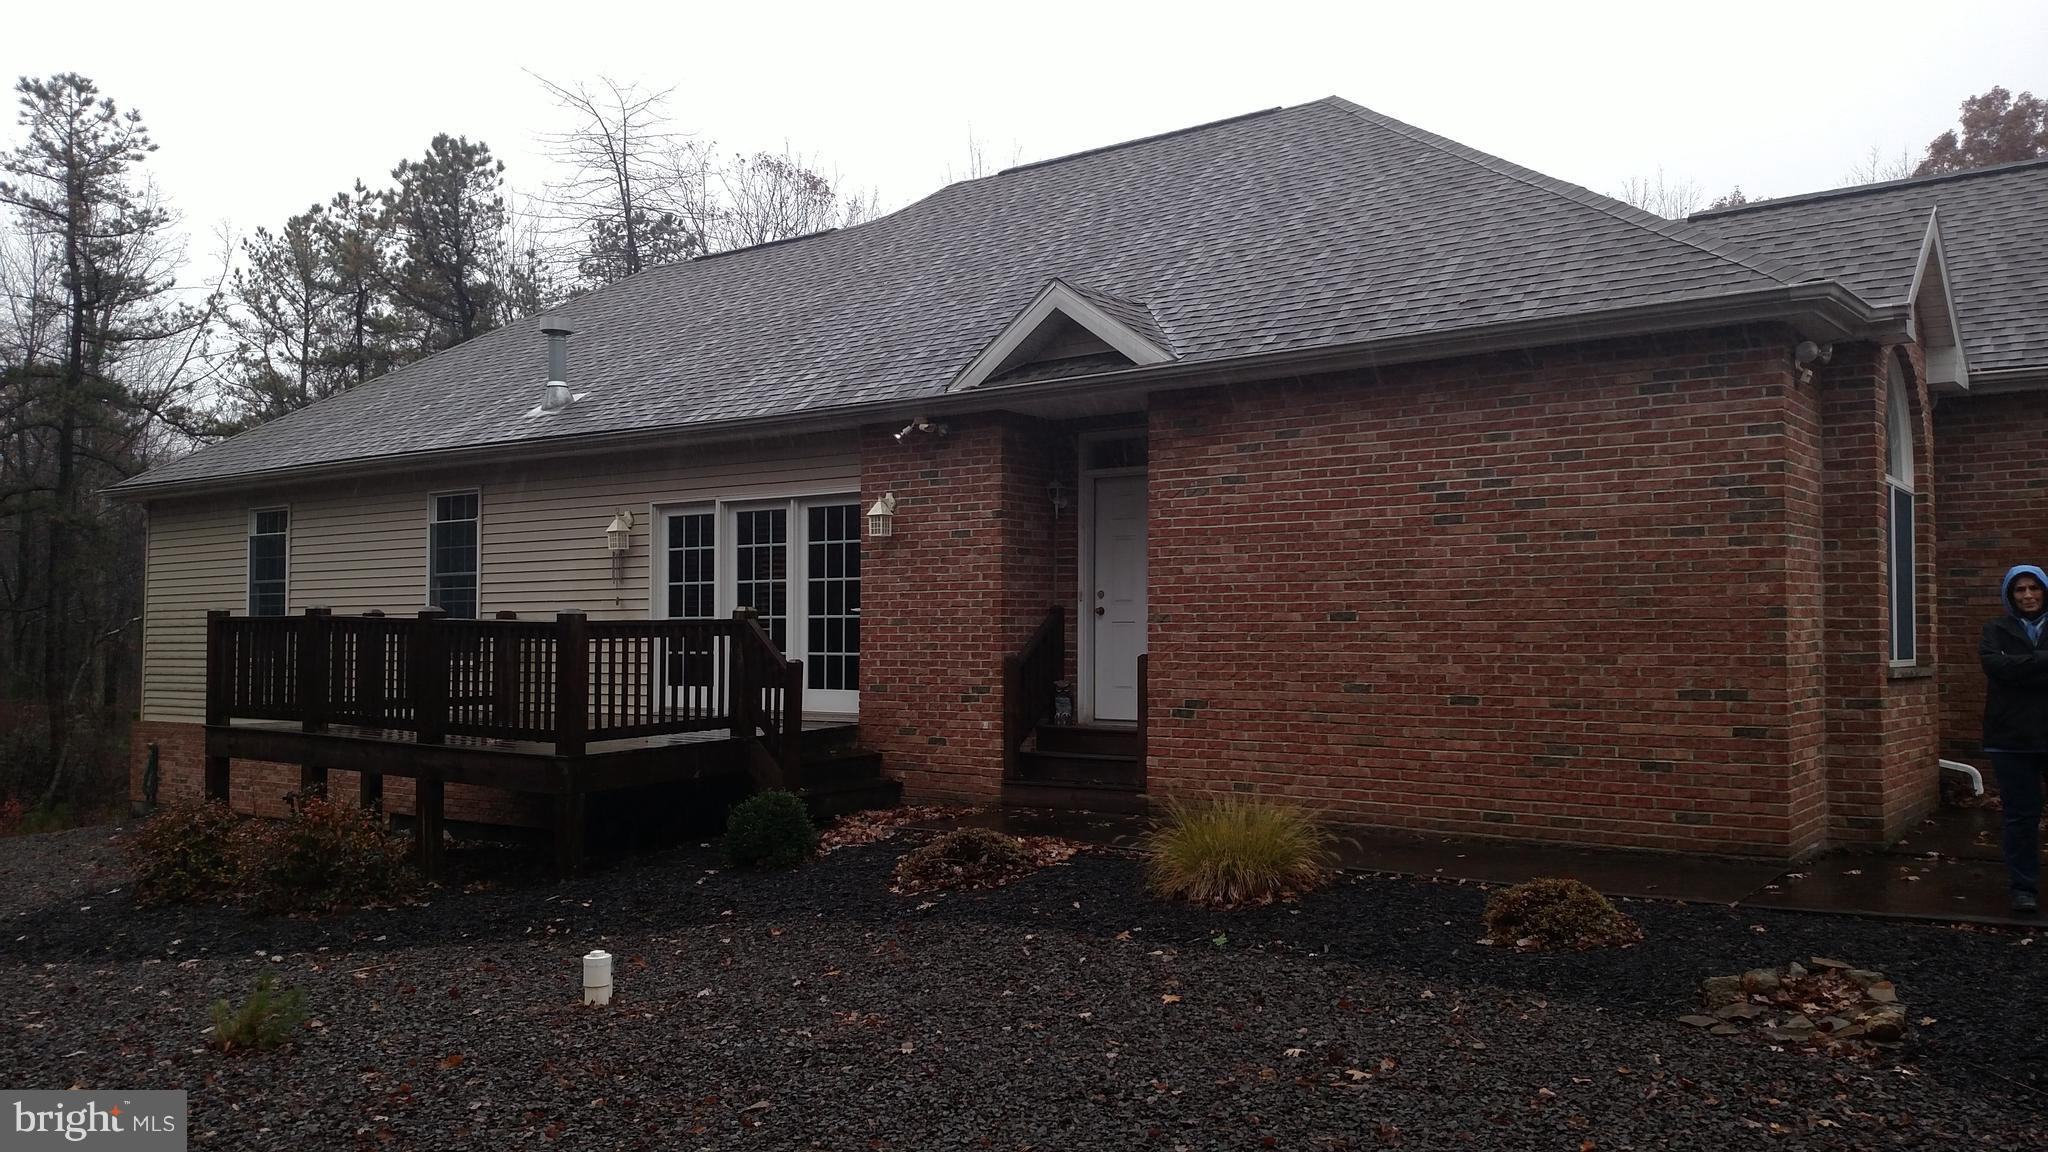 37 SOUTHERN HILLS COURT, HAZLE TOWNSHIP, PA 18202